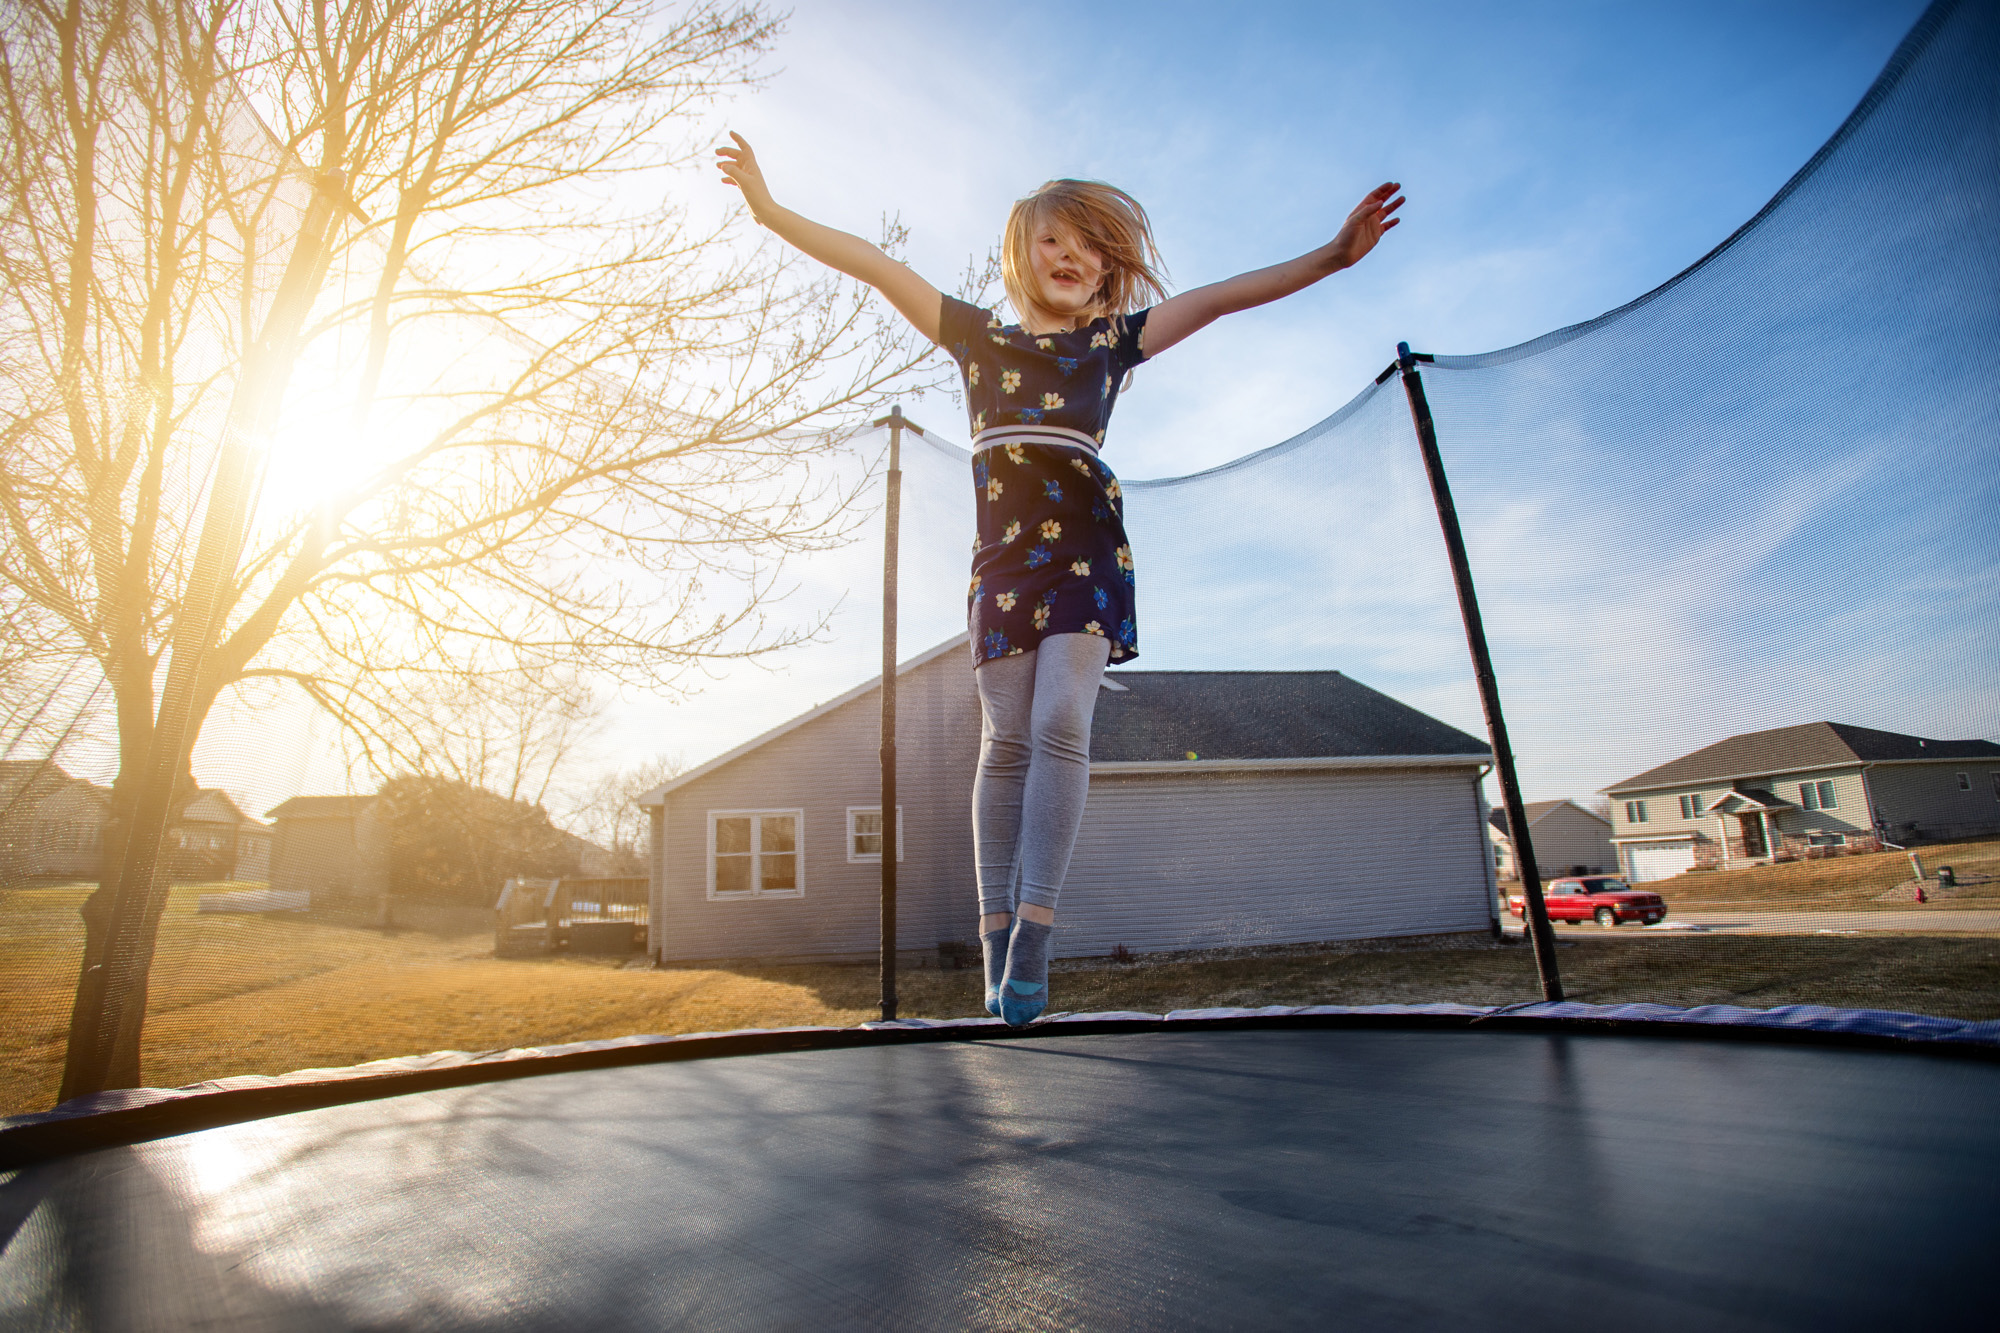 young girl jumping on a trampoline as the sun begins to set